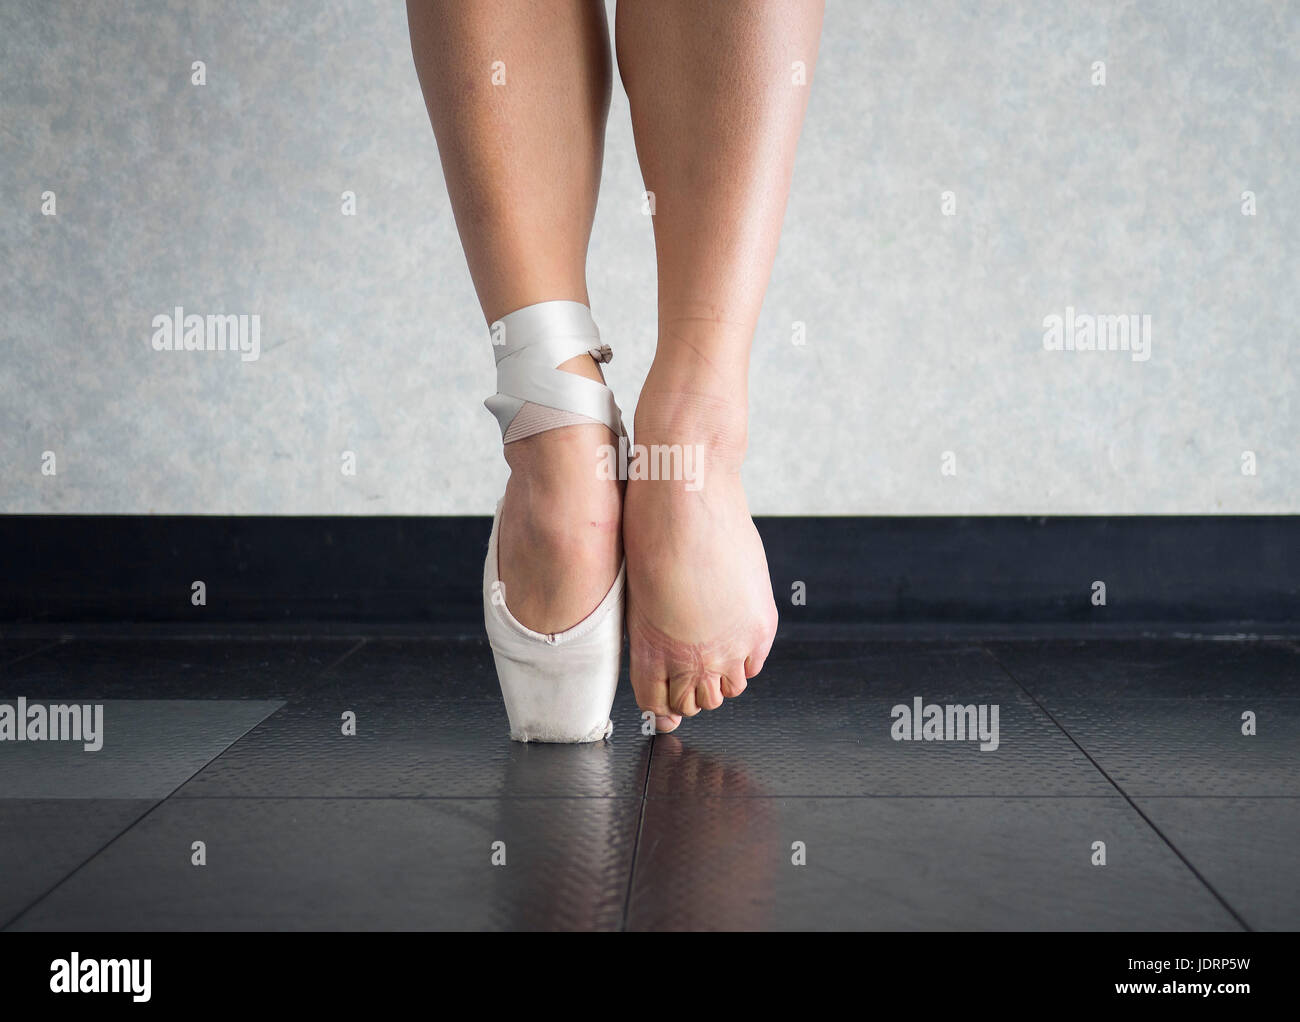 The ballet dancer balance on their pointe shoes, and the feet behind them - Stock Image